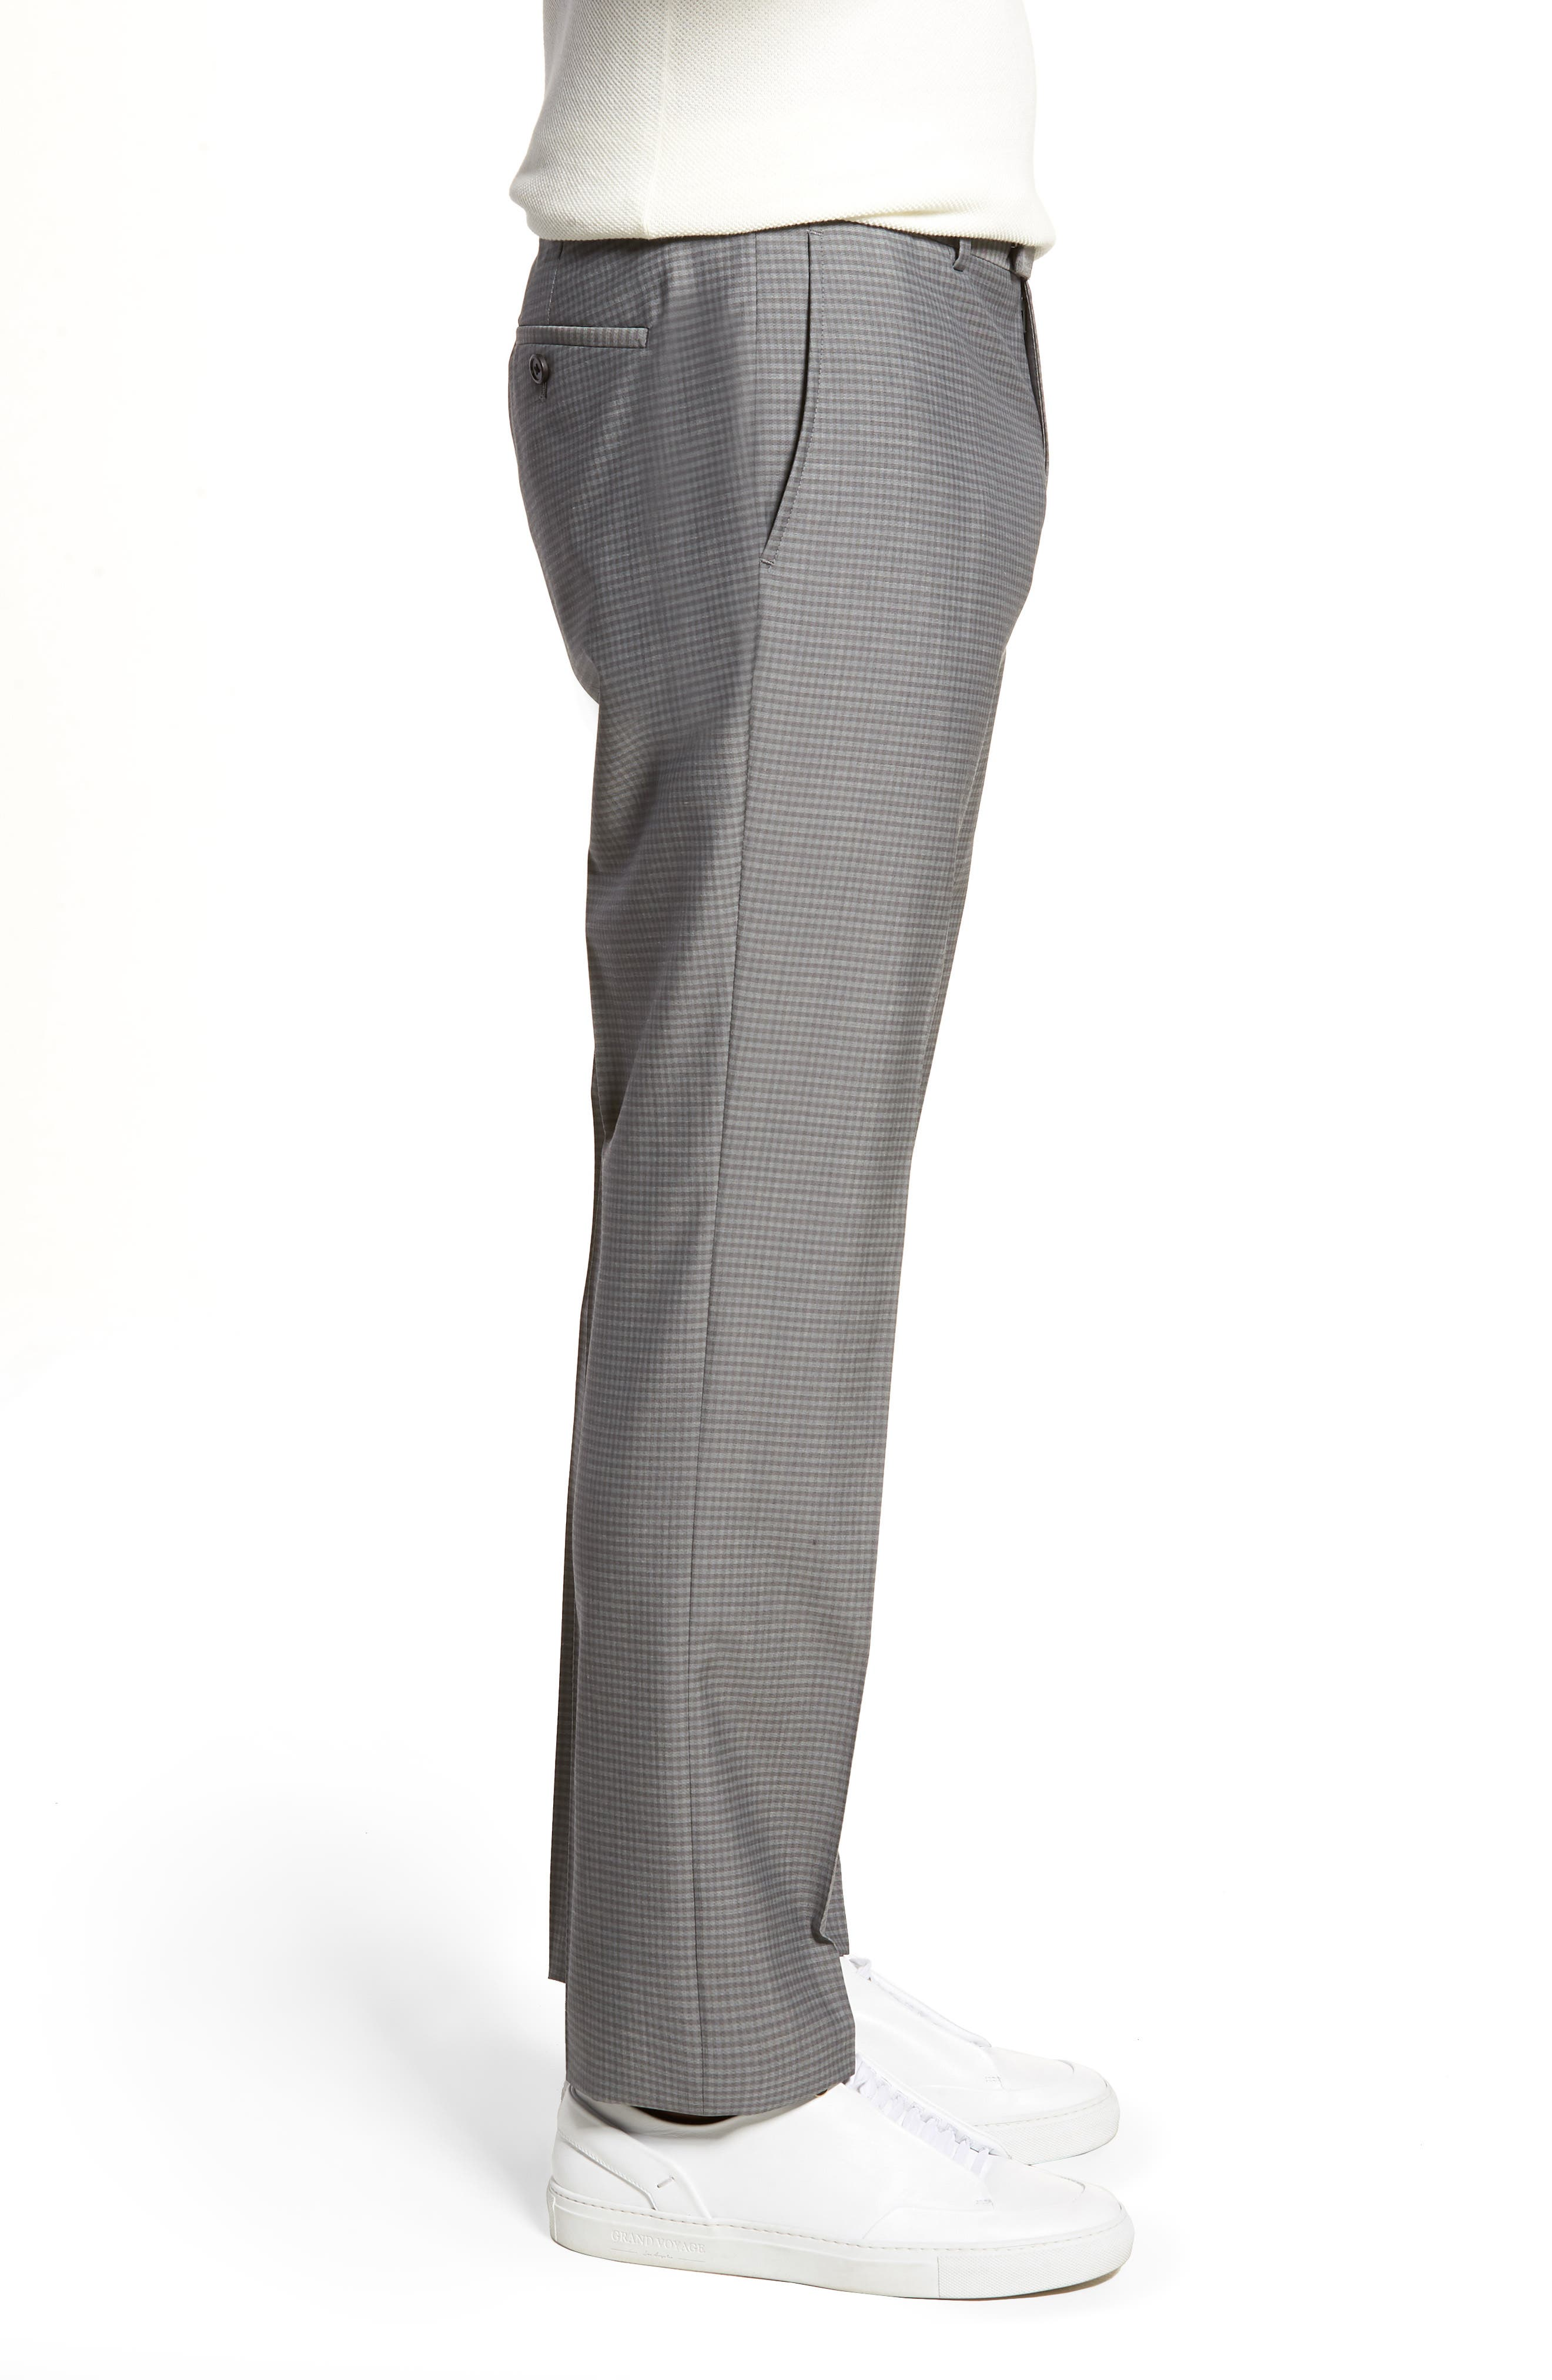 Marlo Flat Front Check Wool Trousers,                             Alternate thumbnail 3, color,                             023